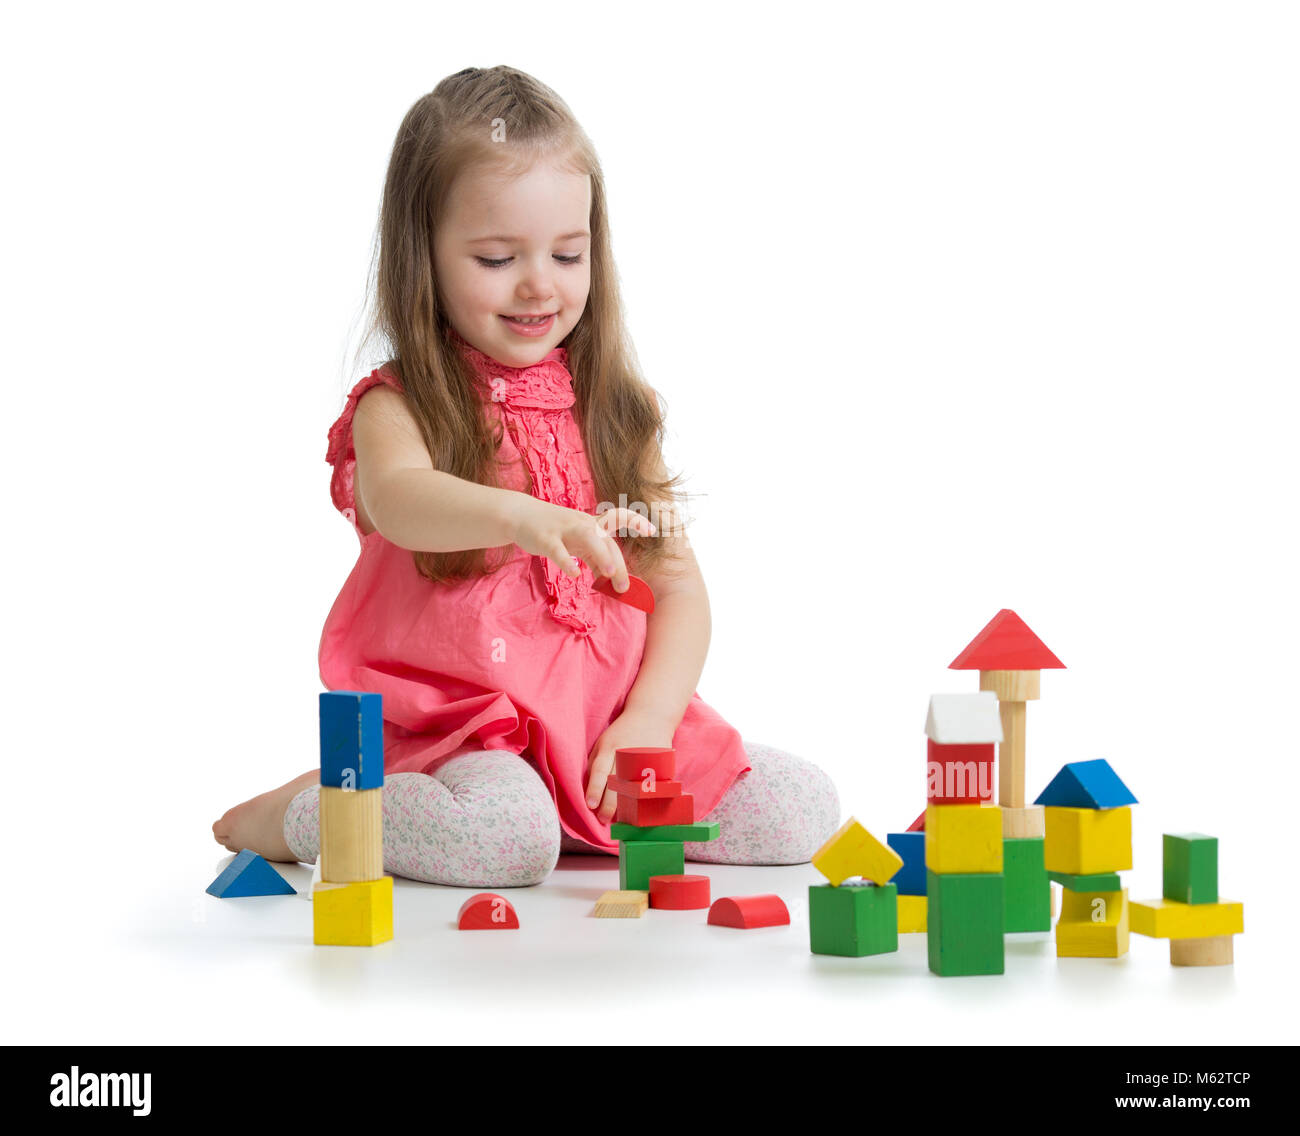 Kid Playing With Wooden Block Toys Toddler Baby Girl Building